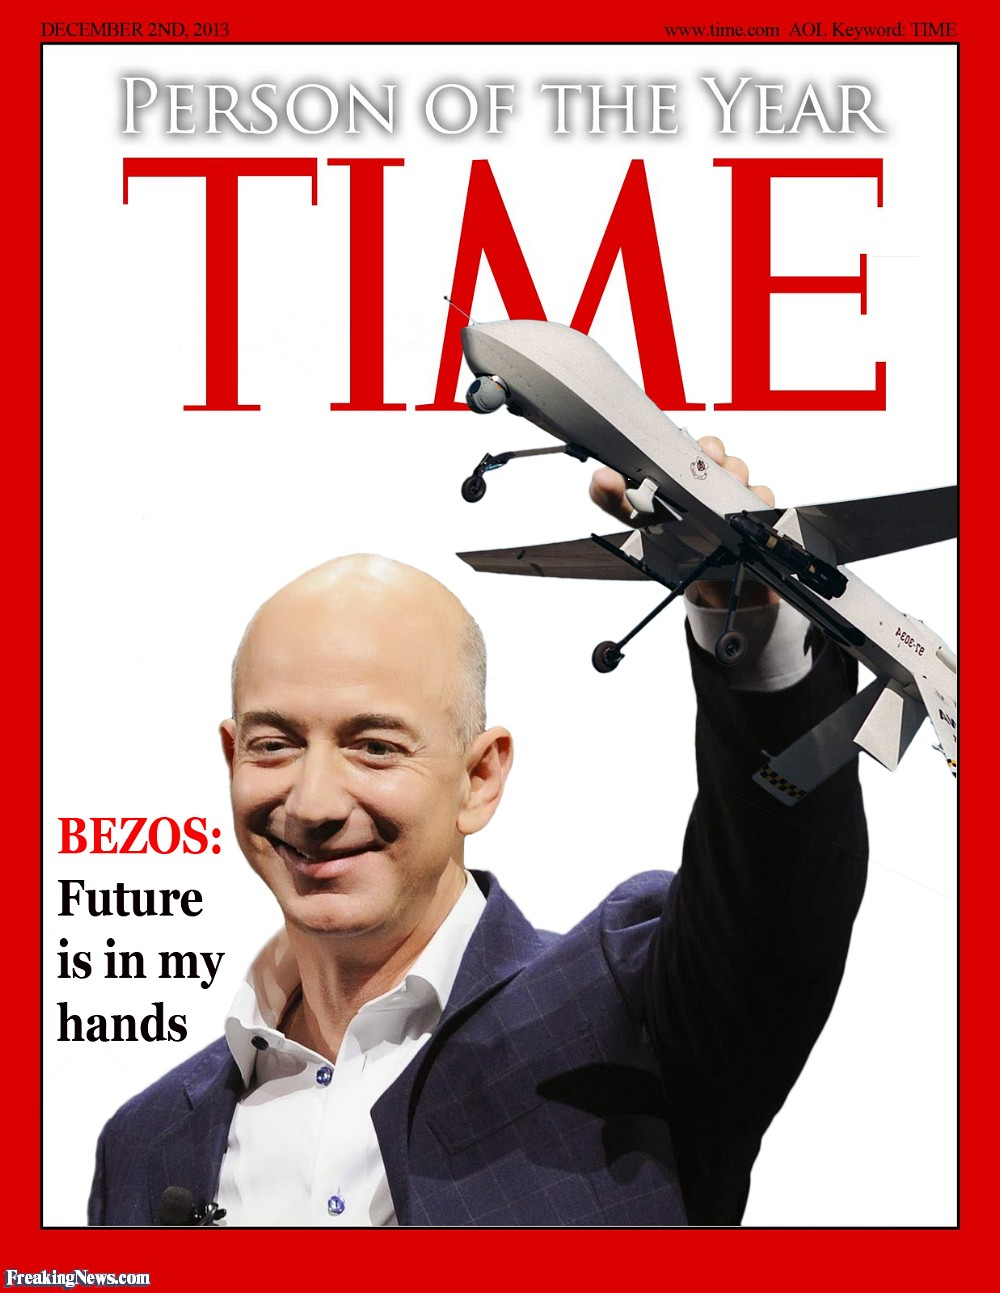 Jeff Bezos Hand Print. CURRENTLY RICHEST MAN IN THE WORLD.  Jeff-Bezos-with-a-Drone-113713